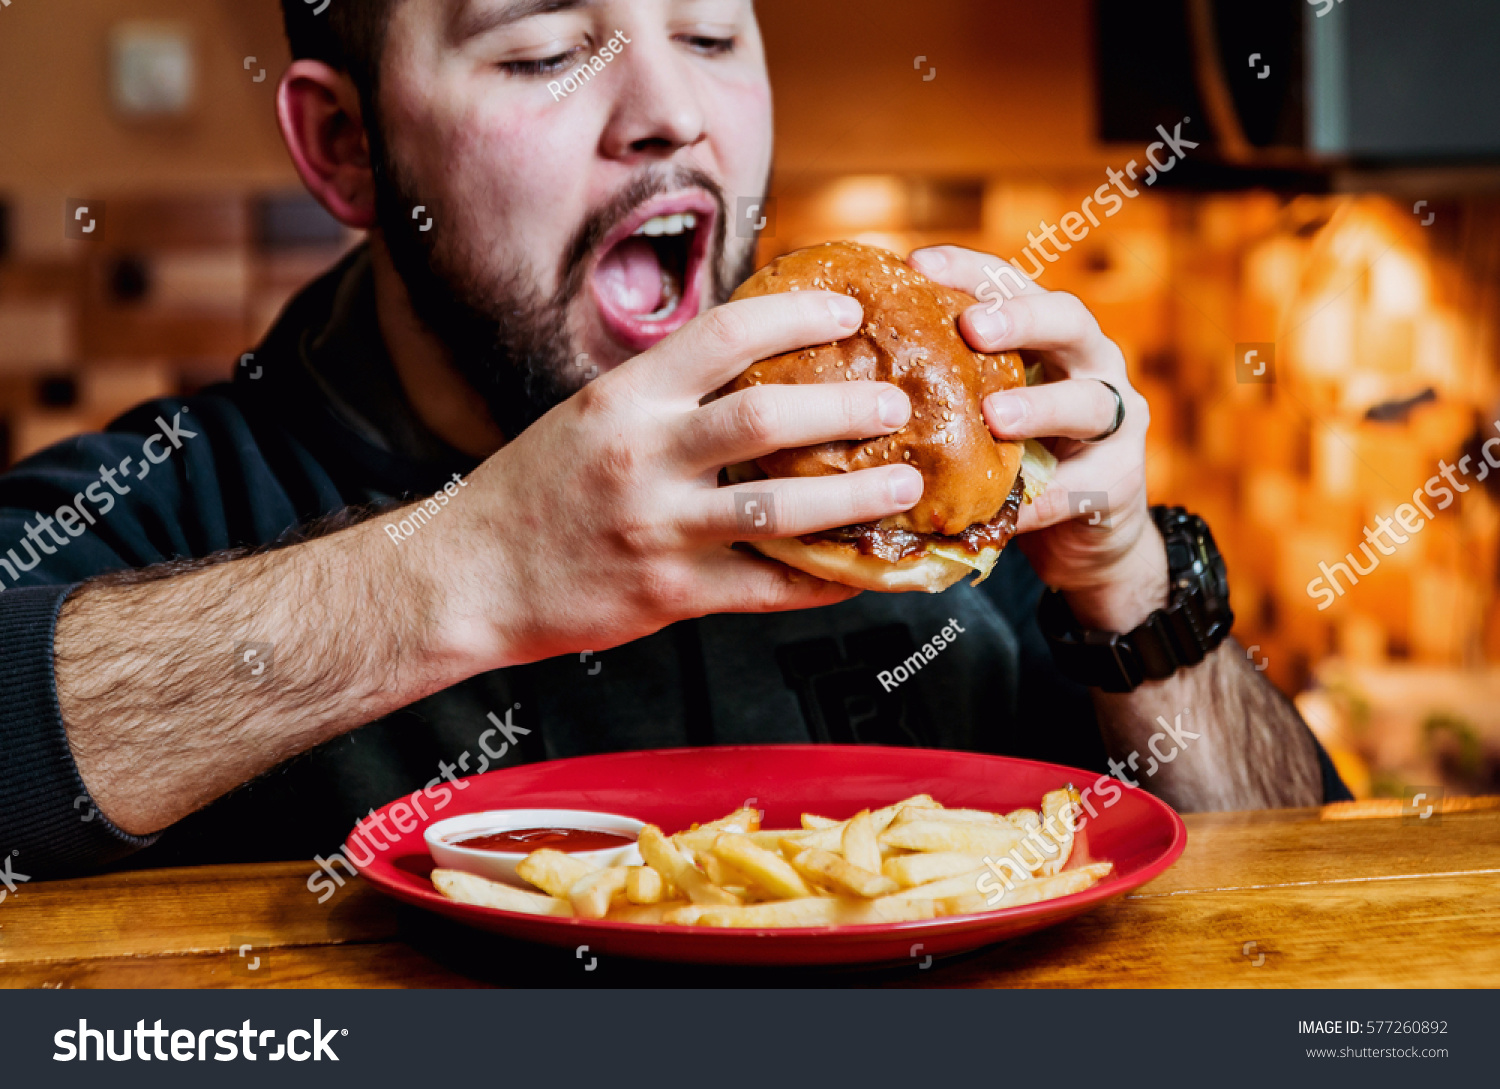 Young man eating a cheeseburger. Restaurant #577260892